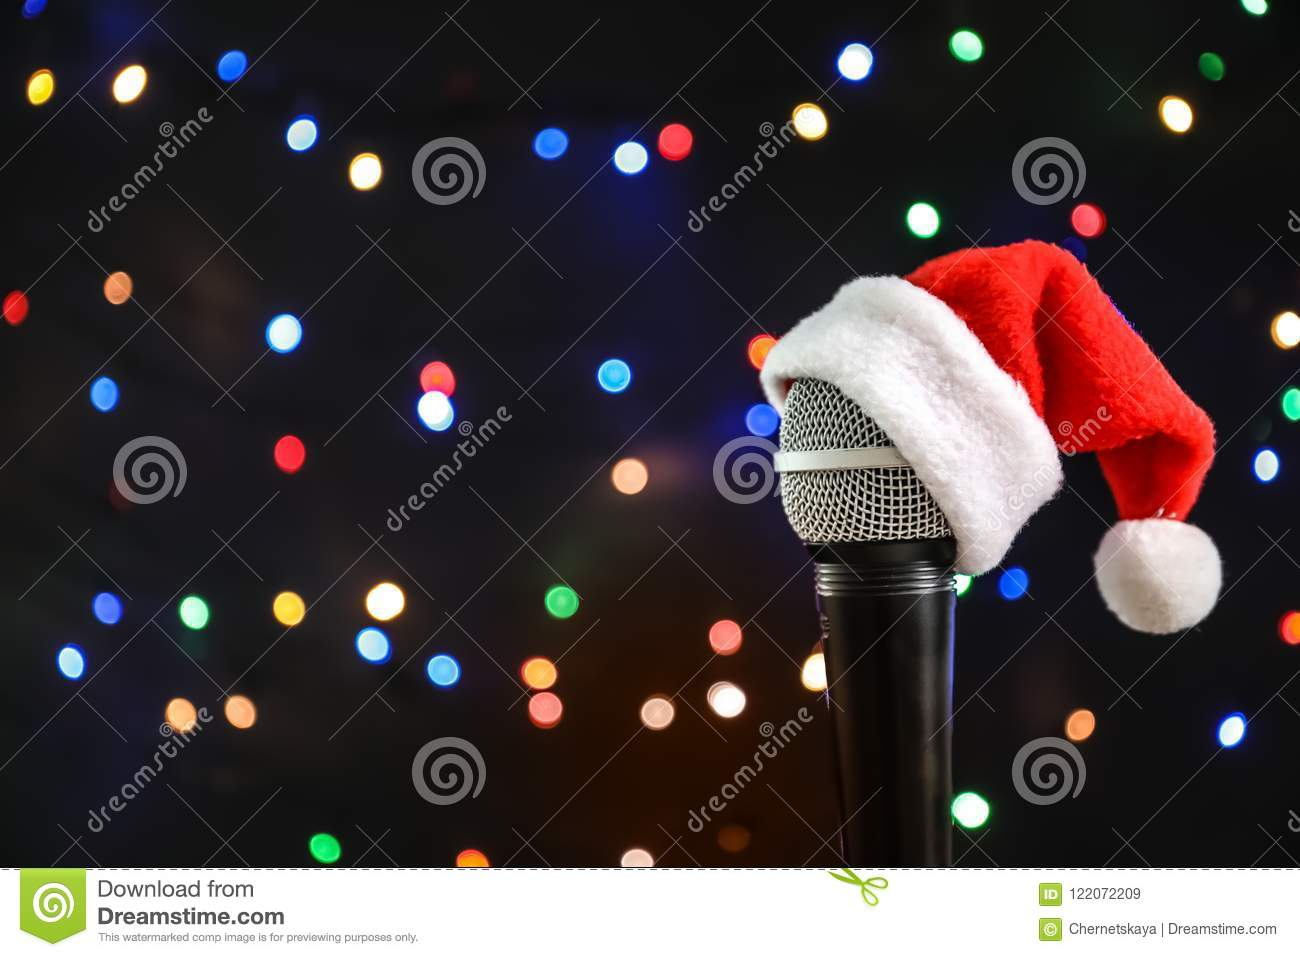 7cdb3abf77410 Microphone with Santa hat against blurred lights. Christmas music concept